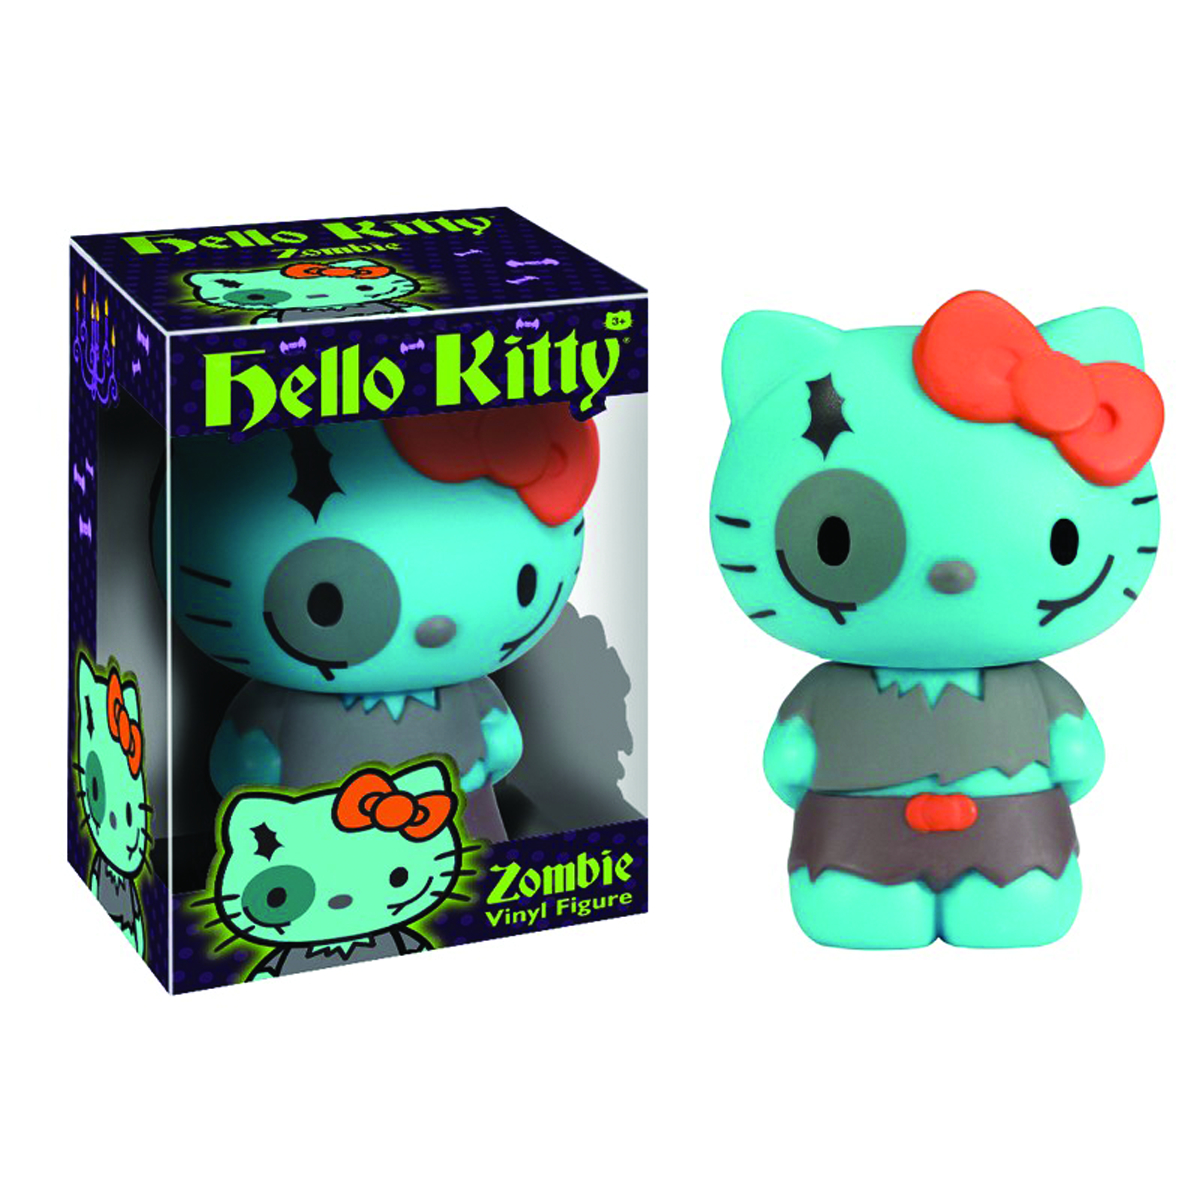 HELLO KITTY ZOMBIE VINYL FIG